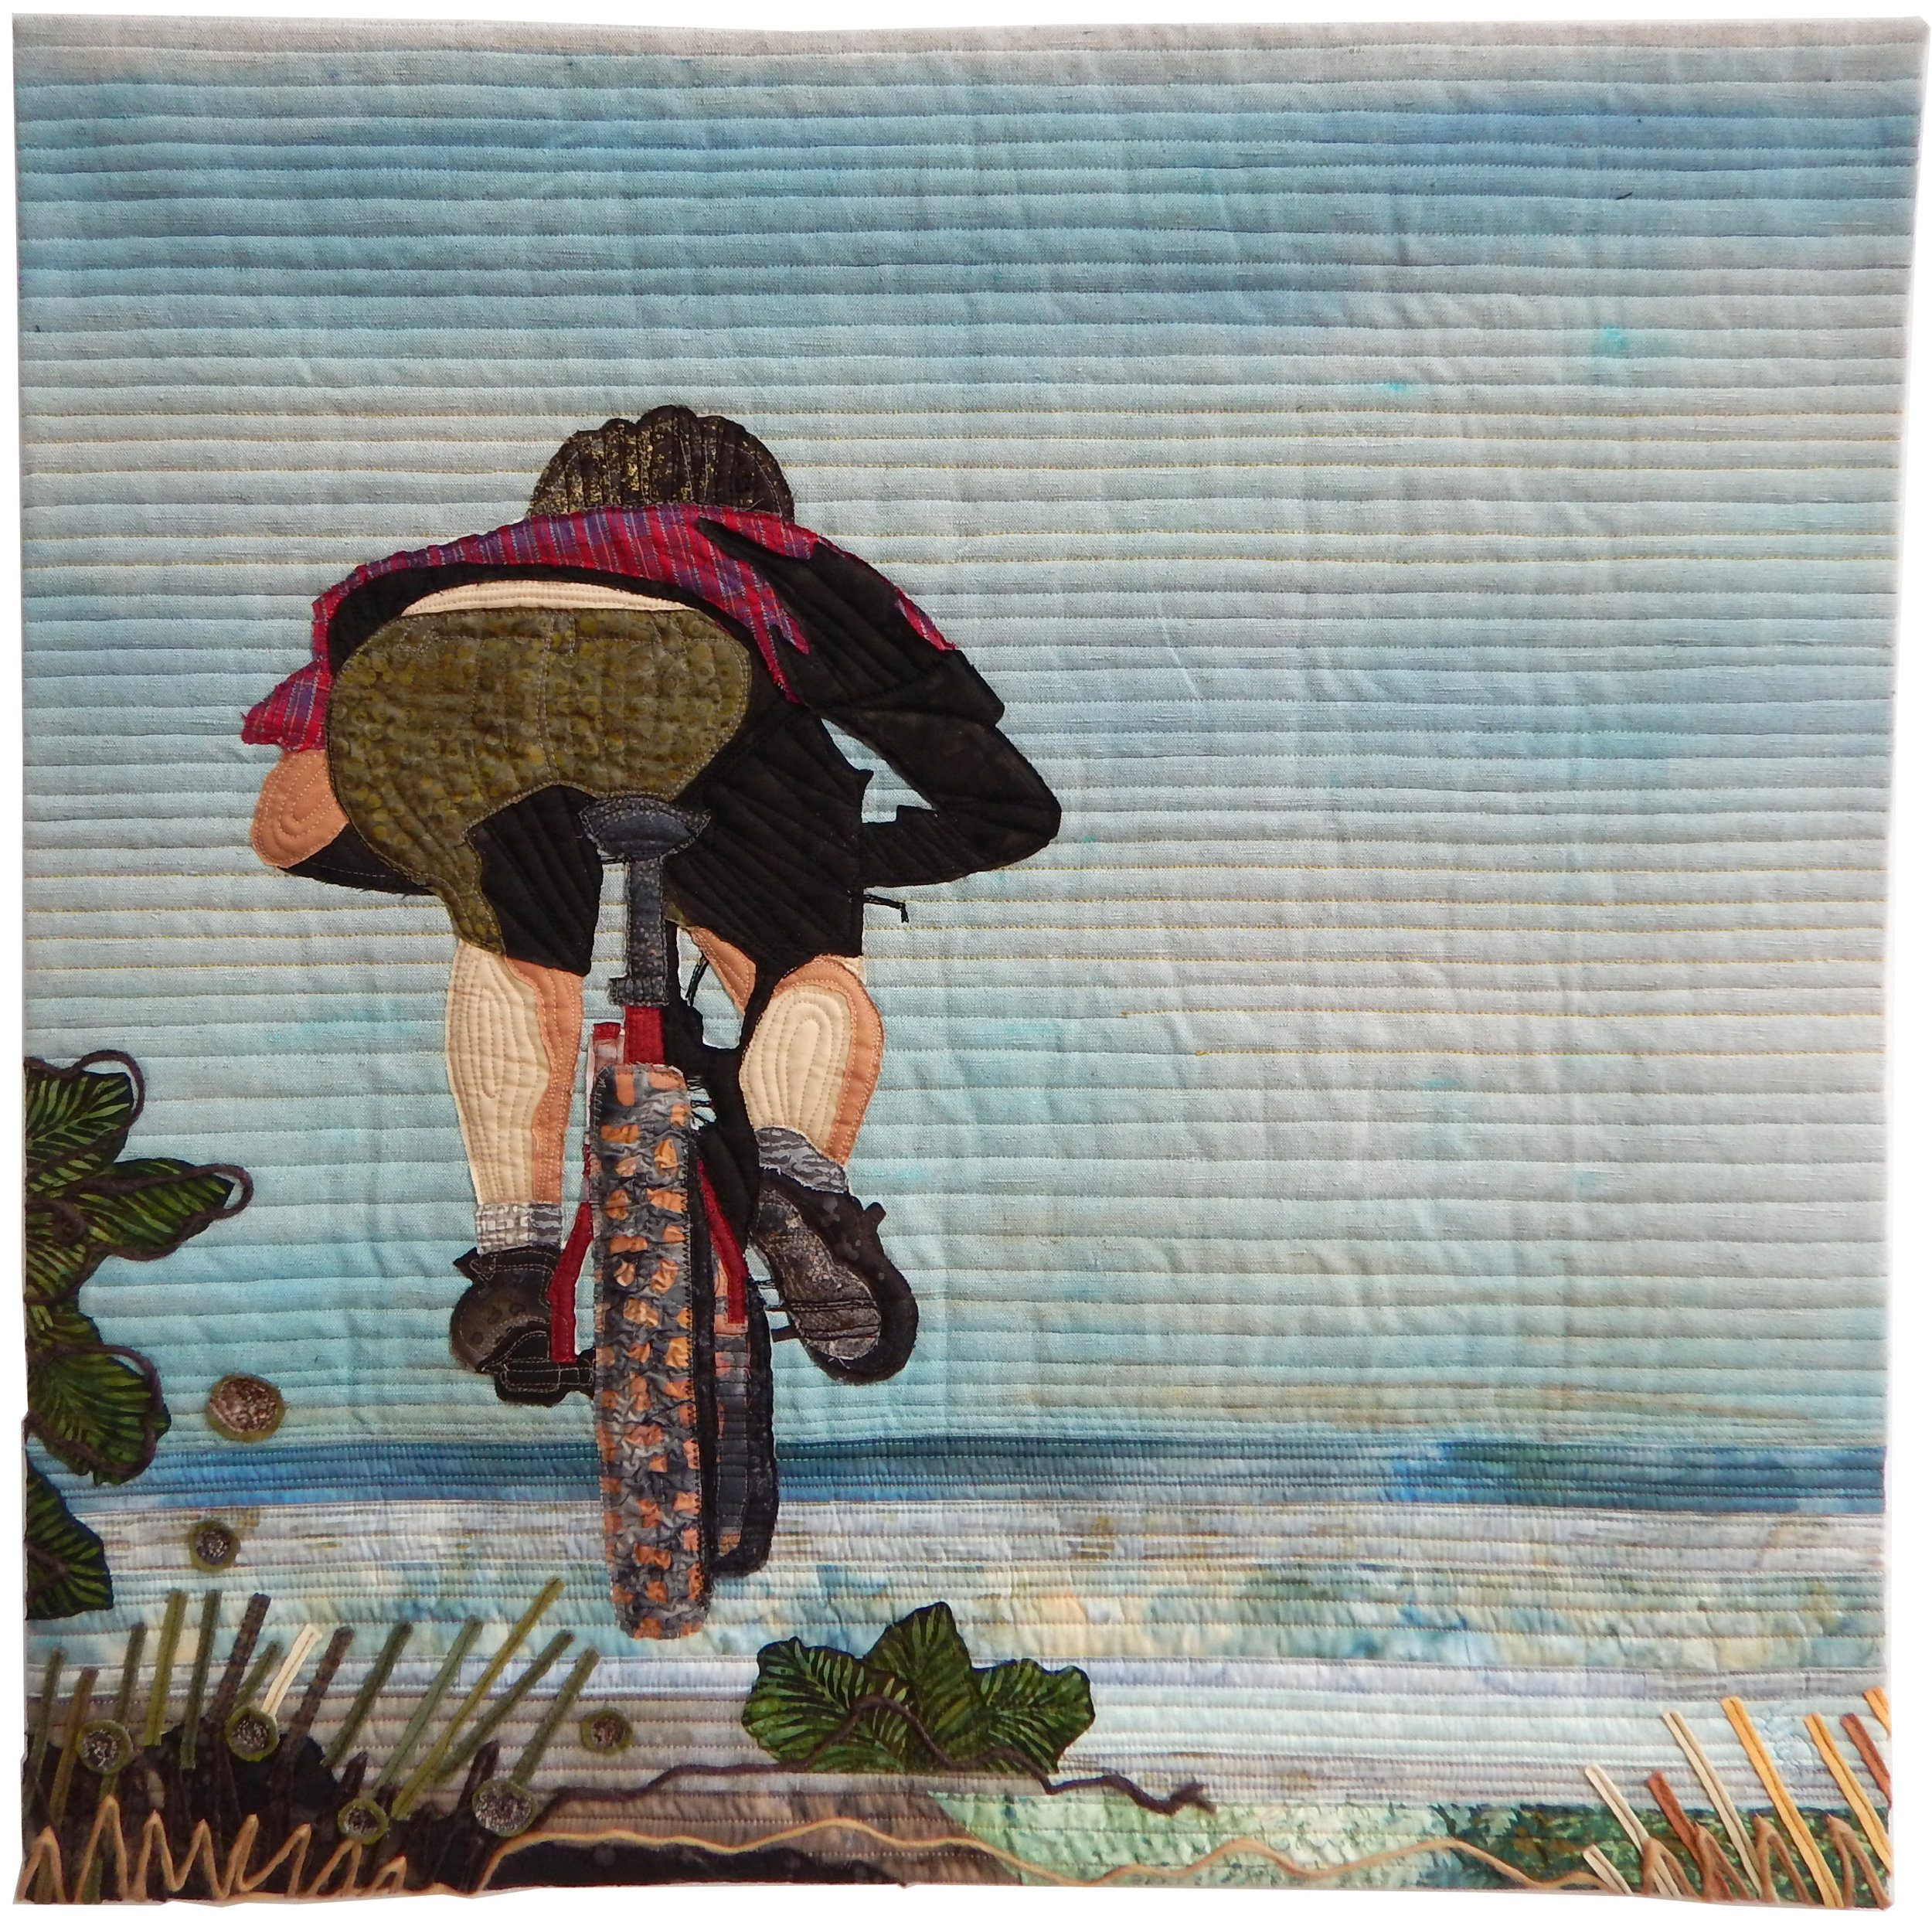 """Ride like the wind - 30"""" x 30"""" - 2016Private Collection - Calgary, ABI draw my inspiration from many memorable hours spent riding beautiful roads and trails at many places in the world on my mountain bike. I can vividly recall the pure thrill of adventure - from climbing treacherous, rocky stump-strewn trails to being rewarded with gorgeous panoramic views from mountain tops. I try to live my life with the road trip metaphor - always plan something that keeps you looking ahead and anxious to see what's just over the next rise. And enjoy the ride!"""